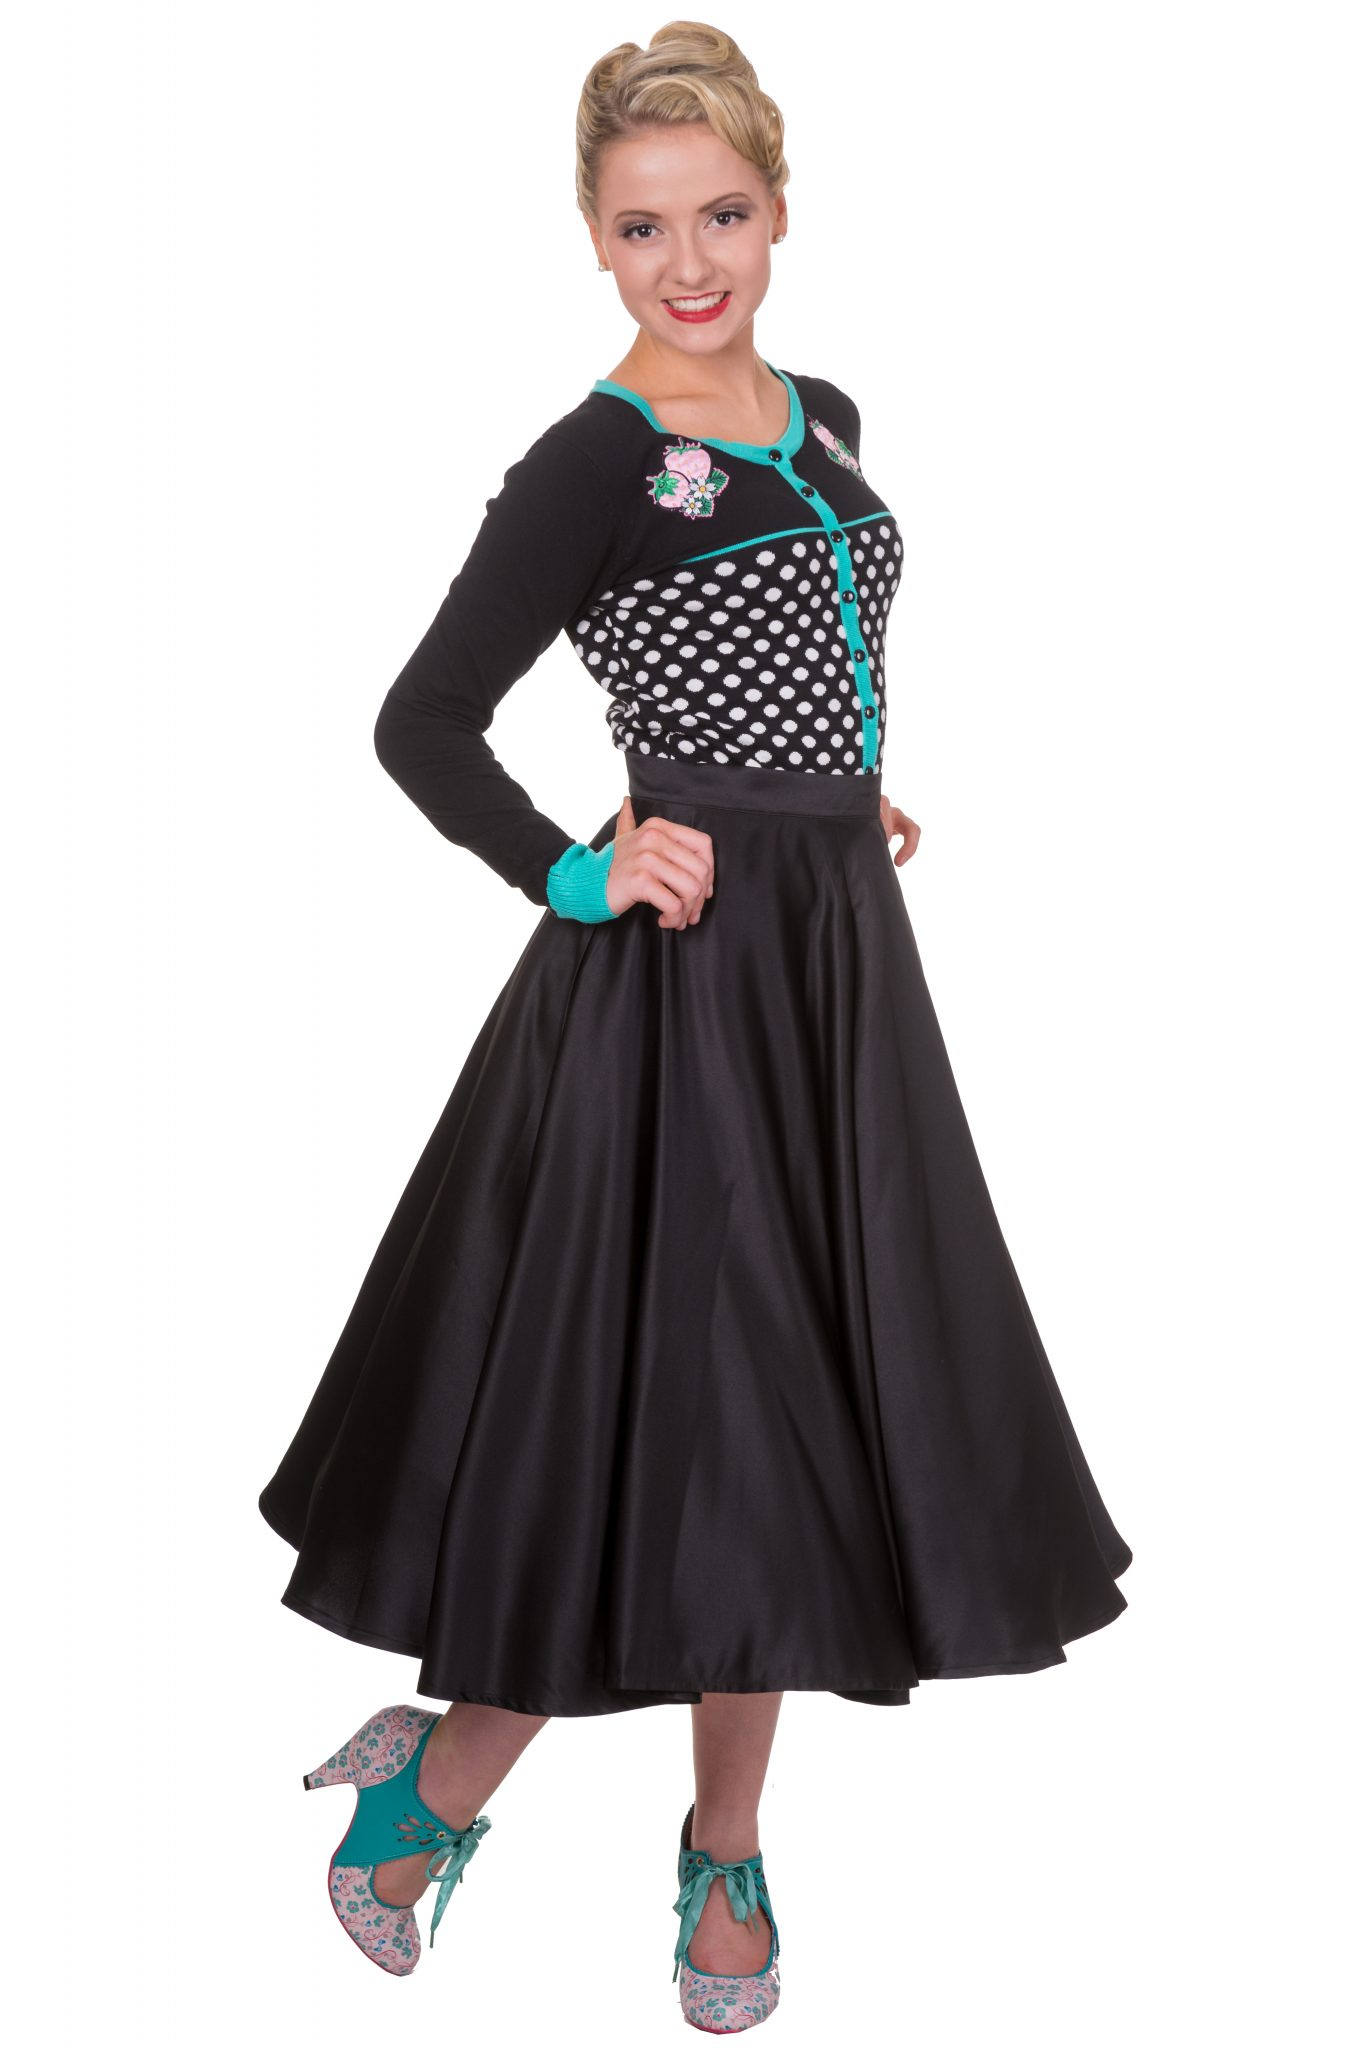 Rockabilly inspired cardigan with polka dot detail and flower embellishments, black satin swing skirt and vintage inspired kitten heels with ties